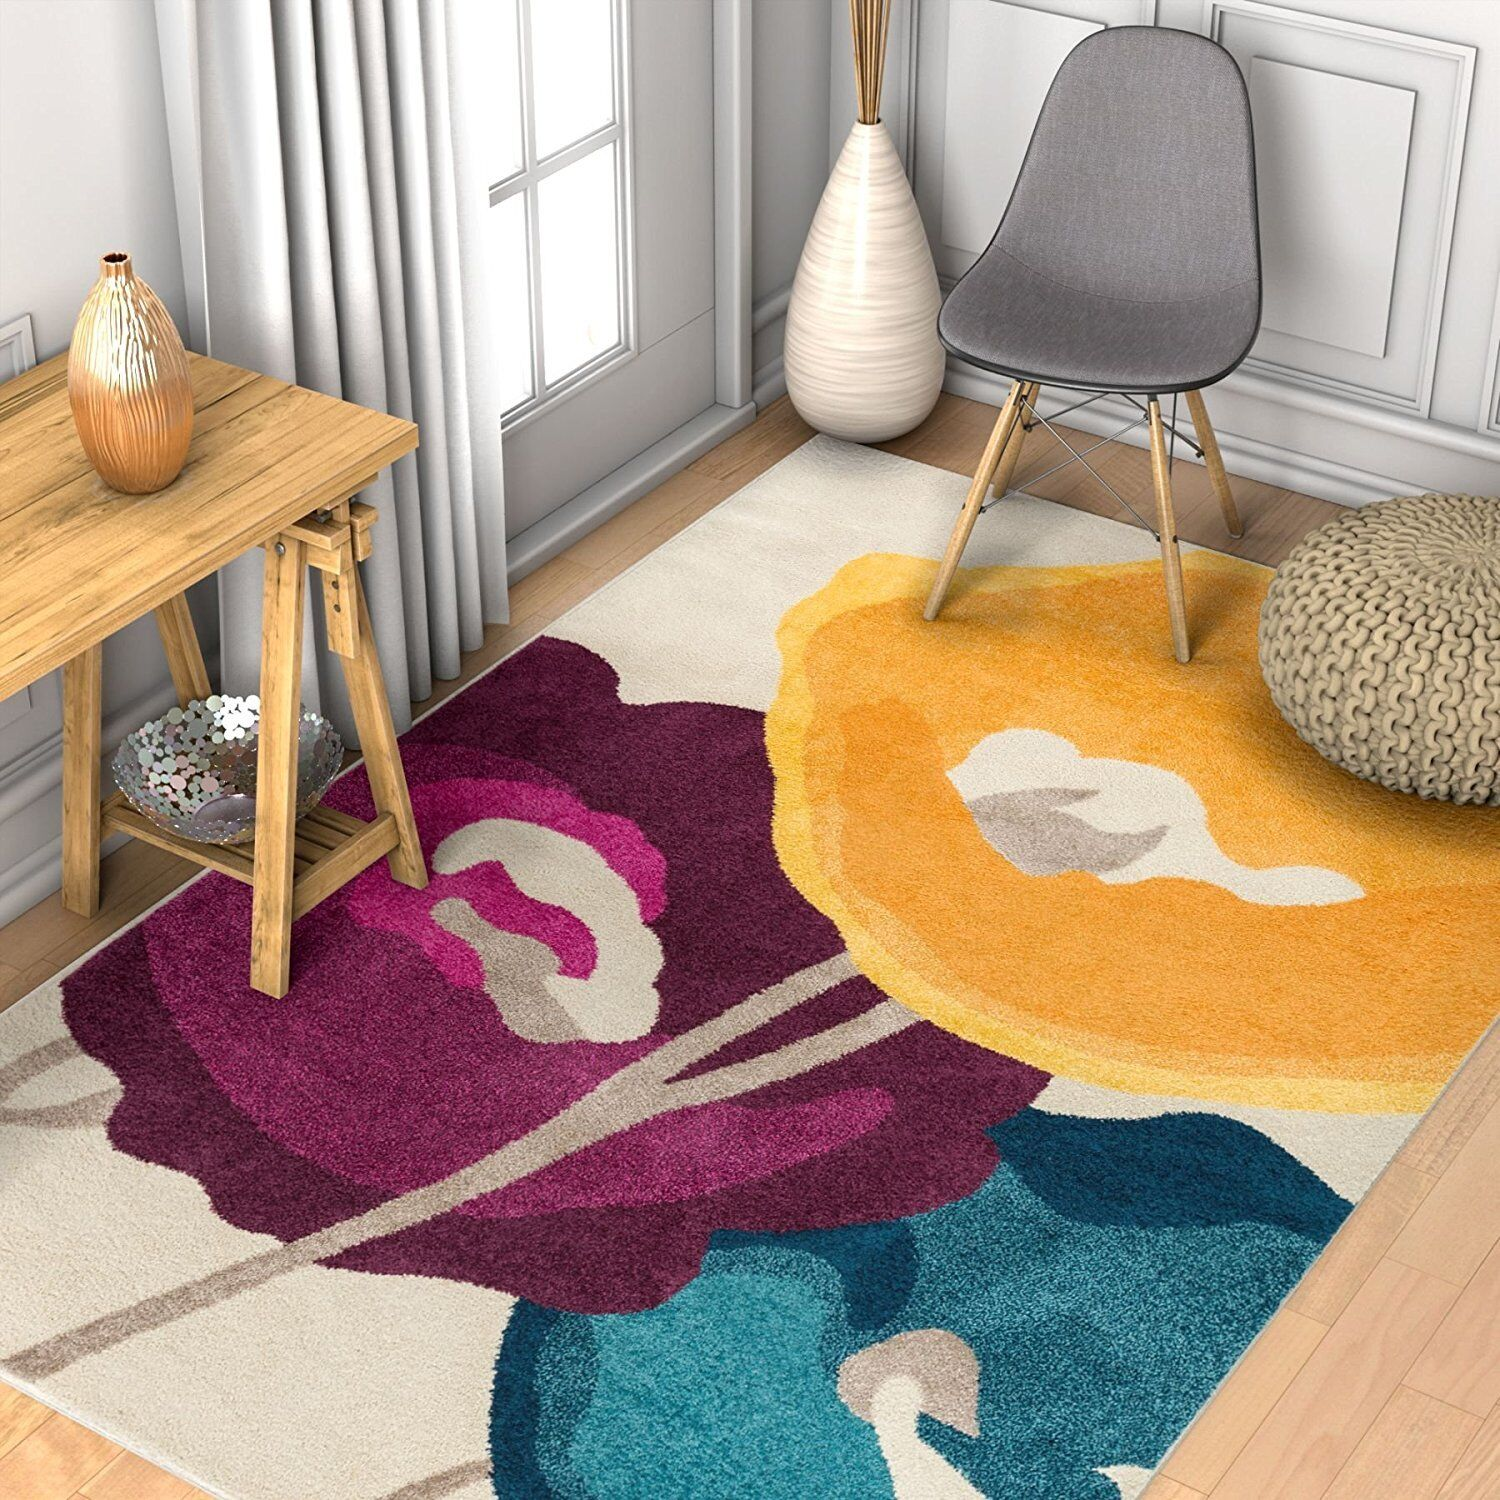 Rugs Area Rugs Carpet Area Rug Floor Large Modern Colorful Floral Cool 5x7 Rugs Ebay